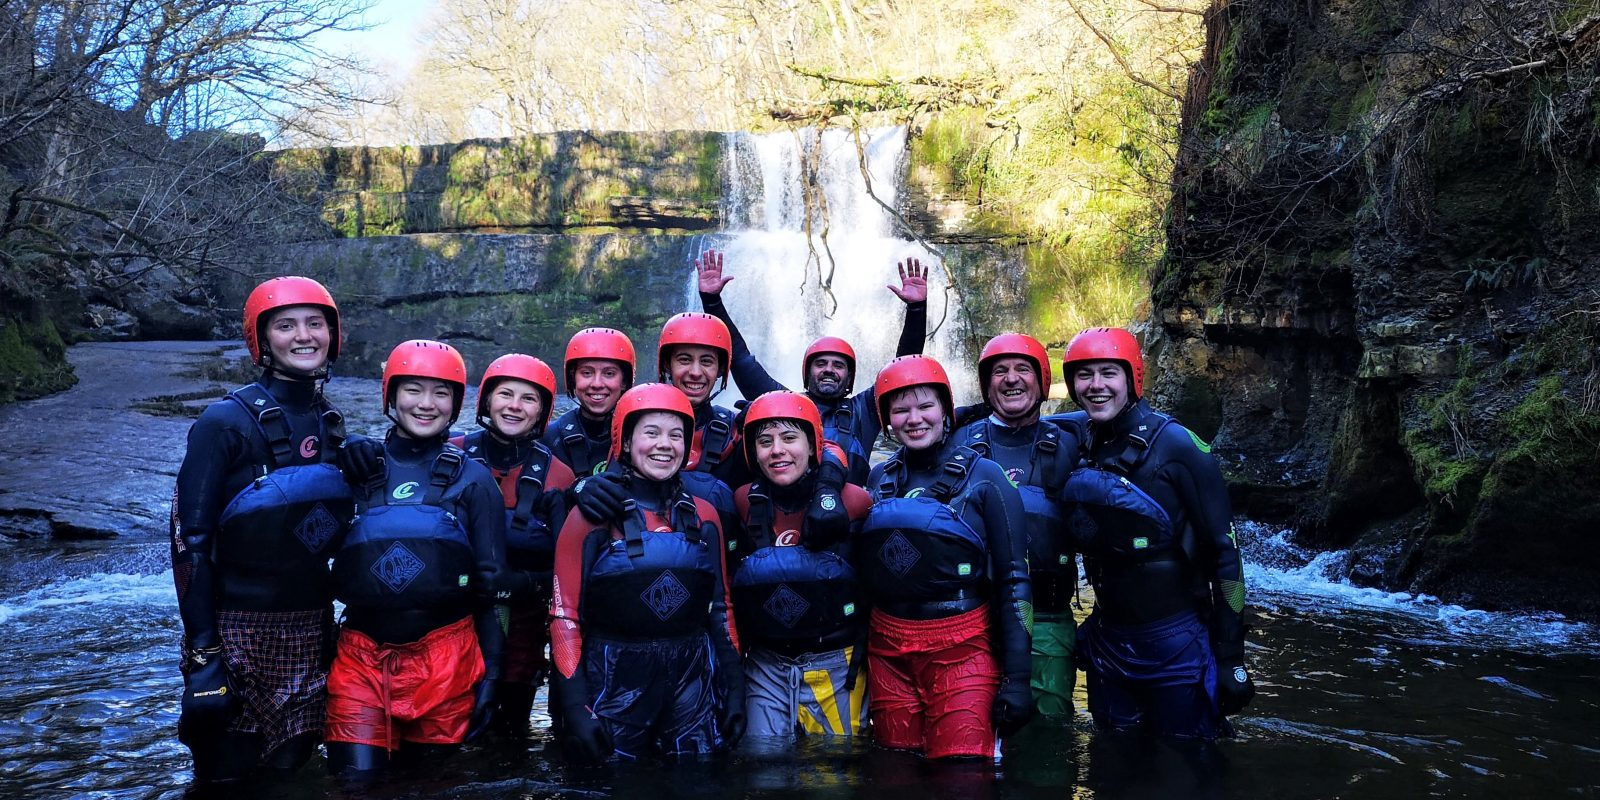 Gorge walking with UWC Atlantic in the Vale of Glamorgan, Wales